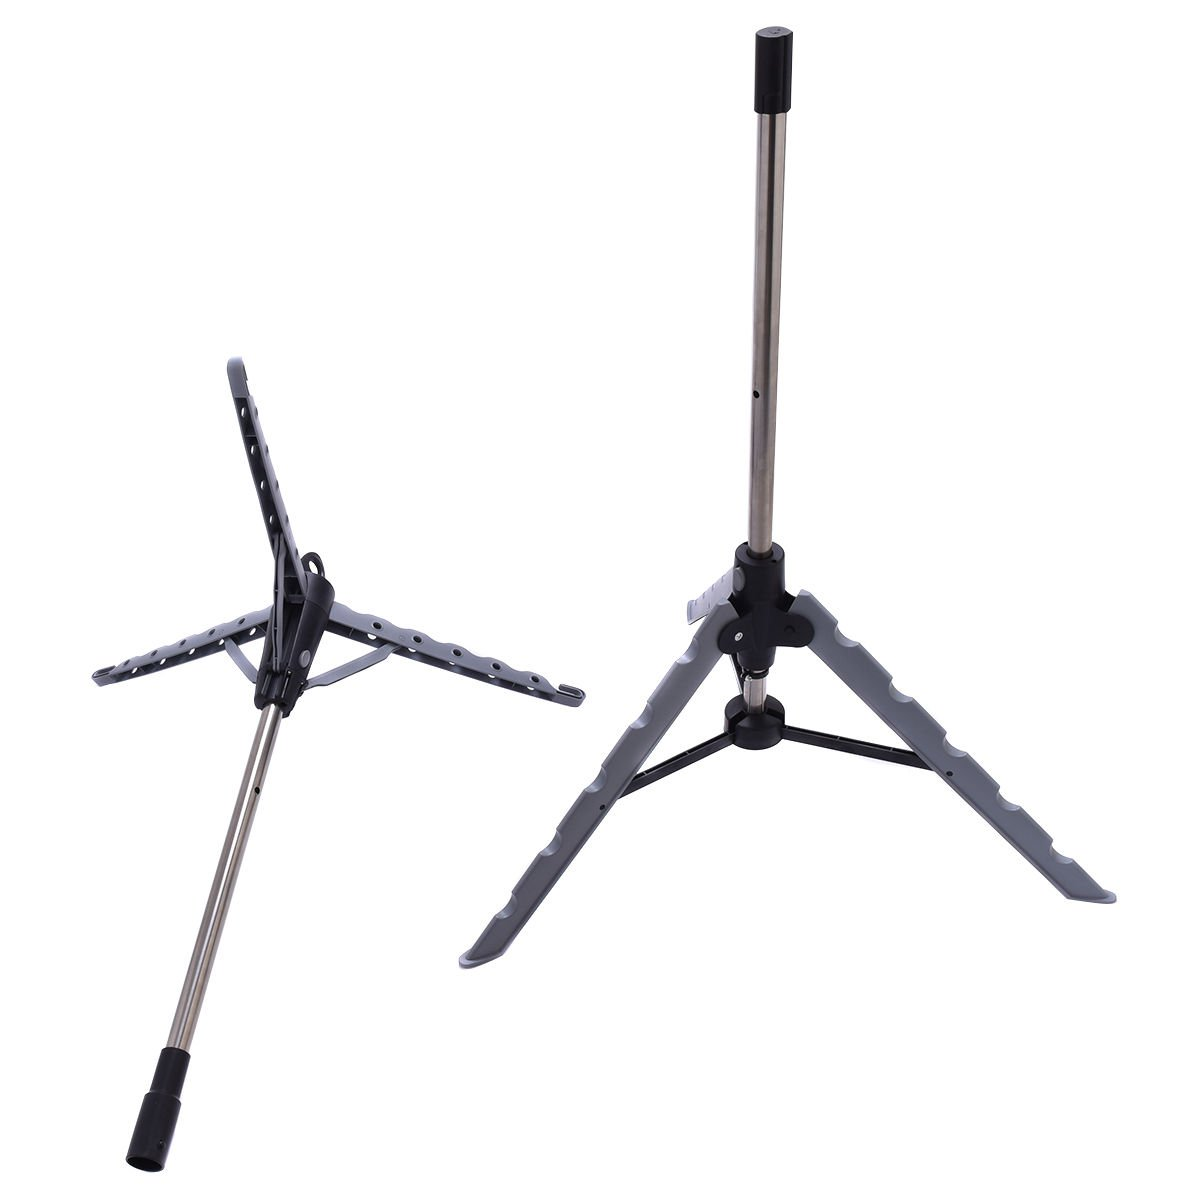 Clothes Hanger Drying Portable Multifunctional Retractable Laundry Racks Tripod by TF-Godung (Image #4)